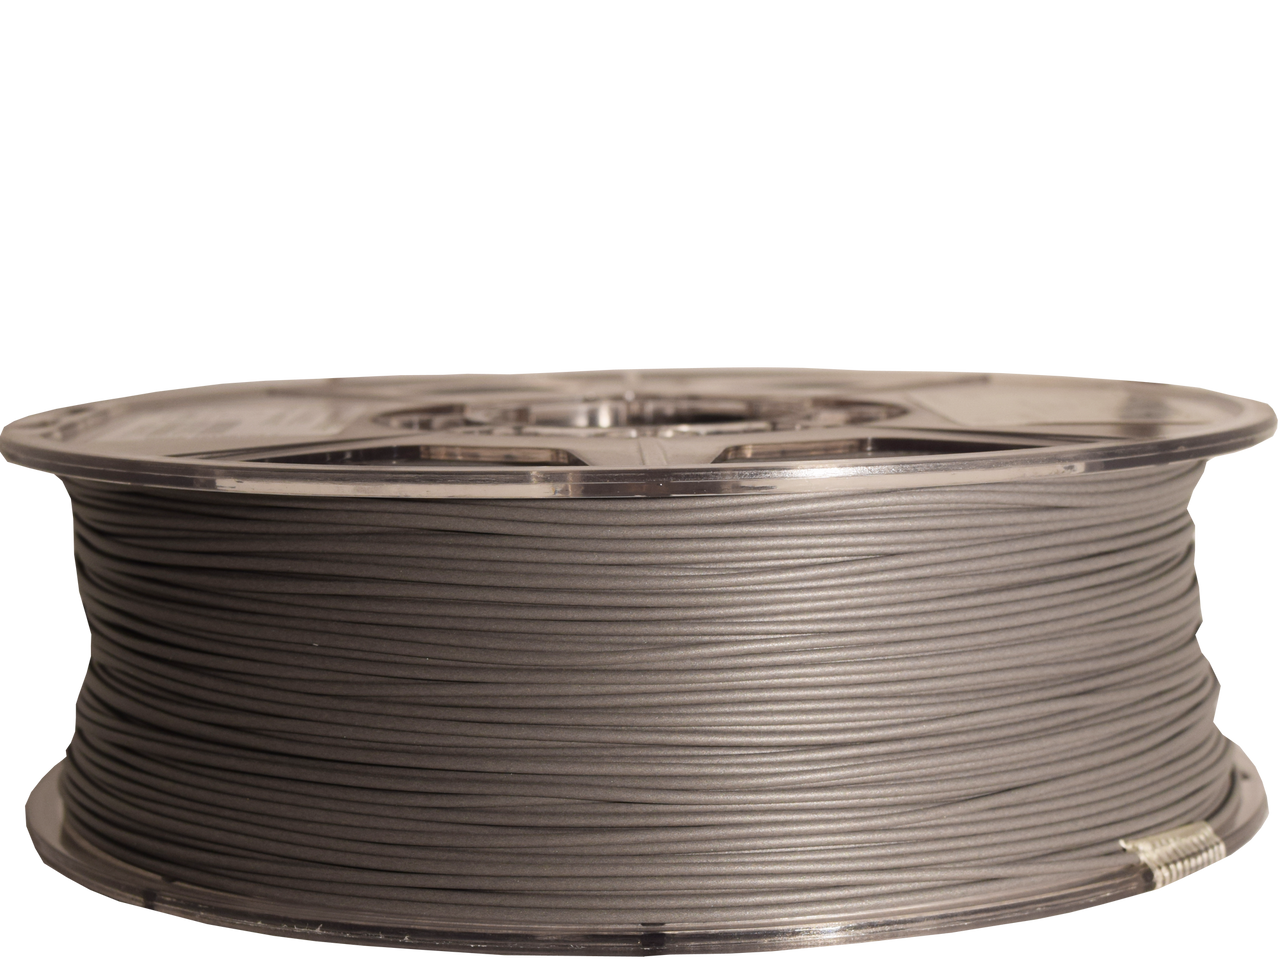 RePLAy 3D Aluminum Filament